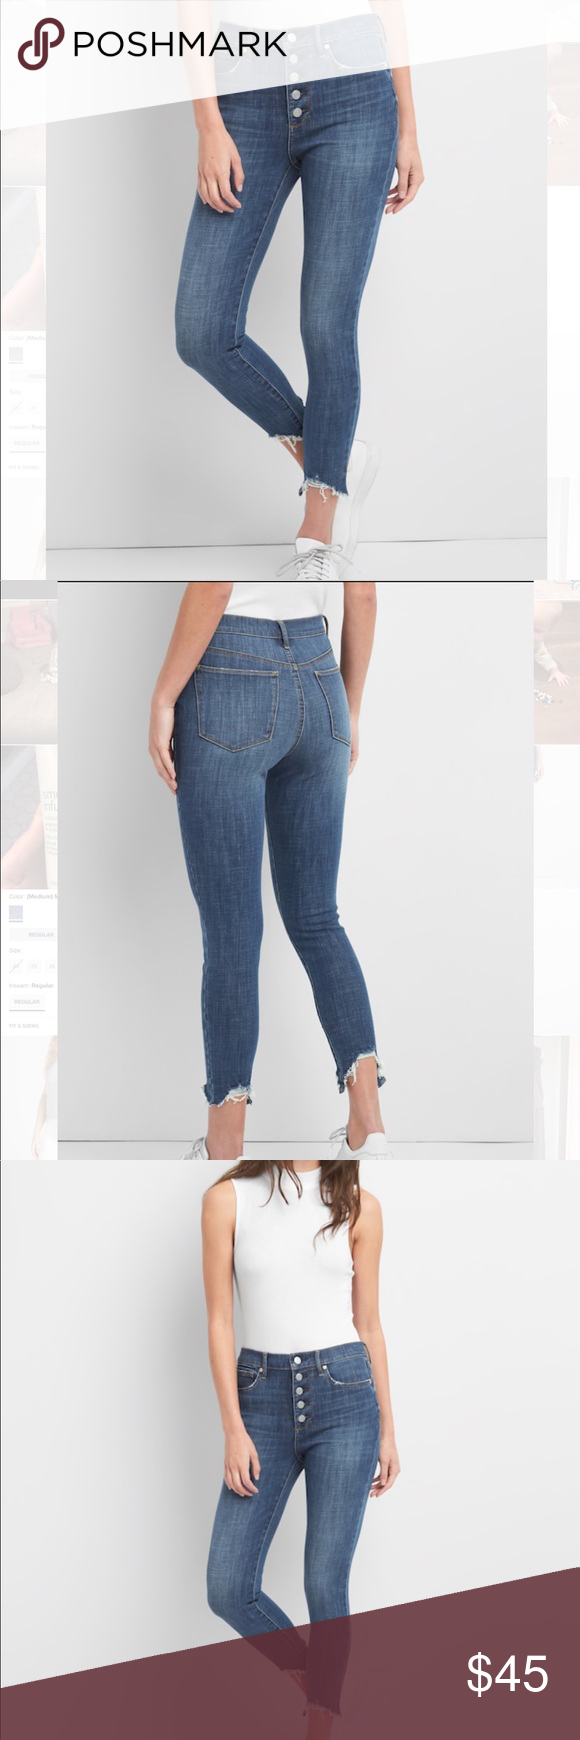 2aa1c3a4af High Rise True Skinny Ankle Jeans in 360 Stretch Only worn a couple times!  Like